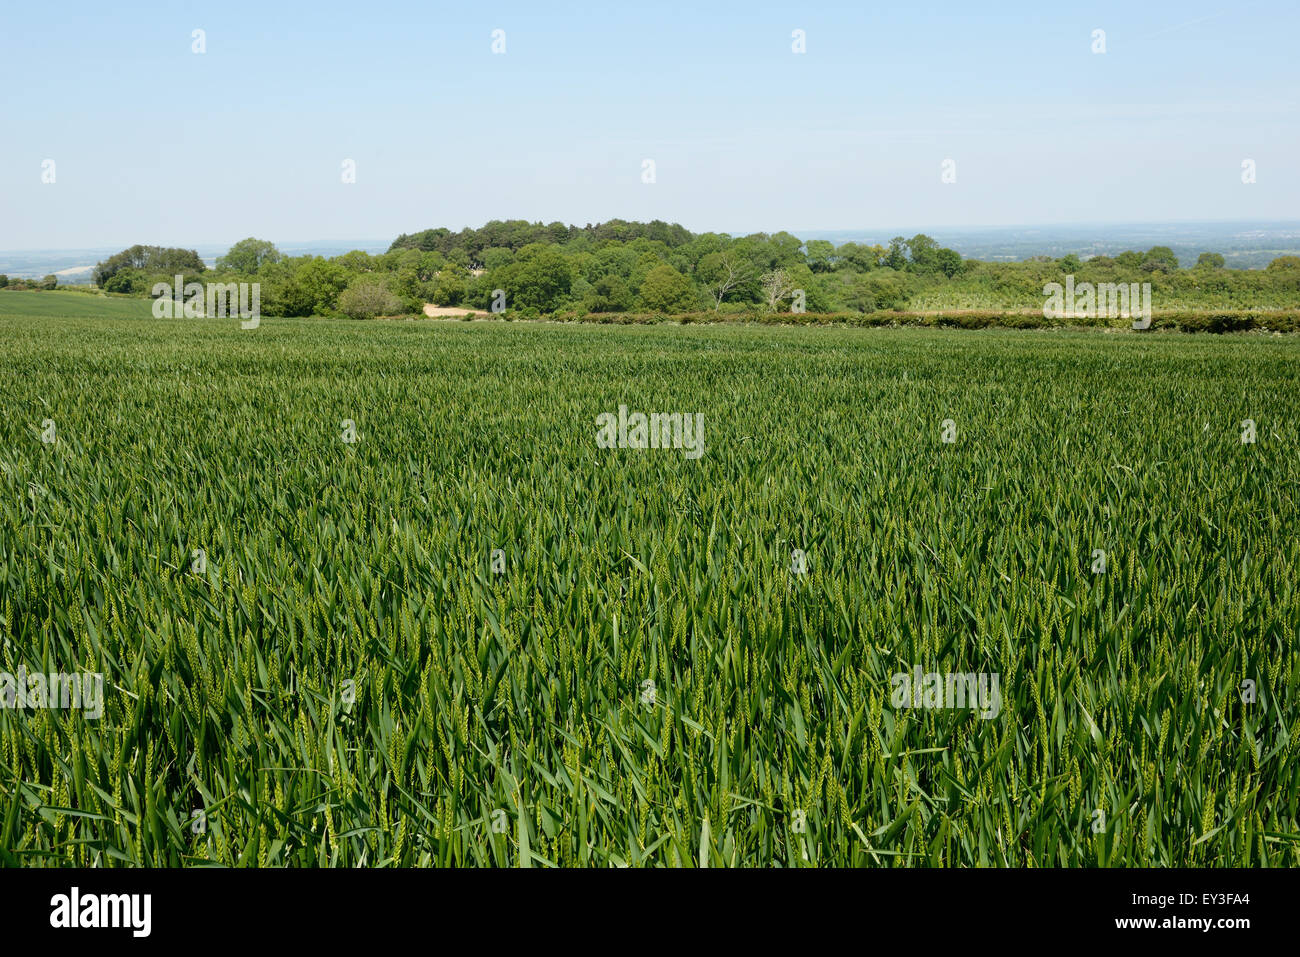 Downland winter wheat crop with some ears emerging stage 50, Berkshire, June - Stock Image